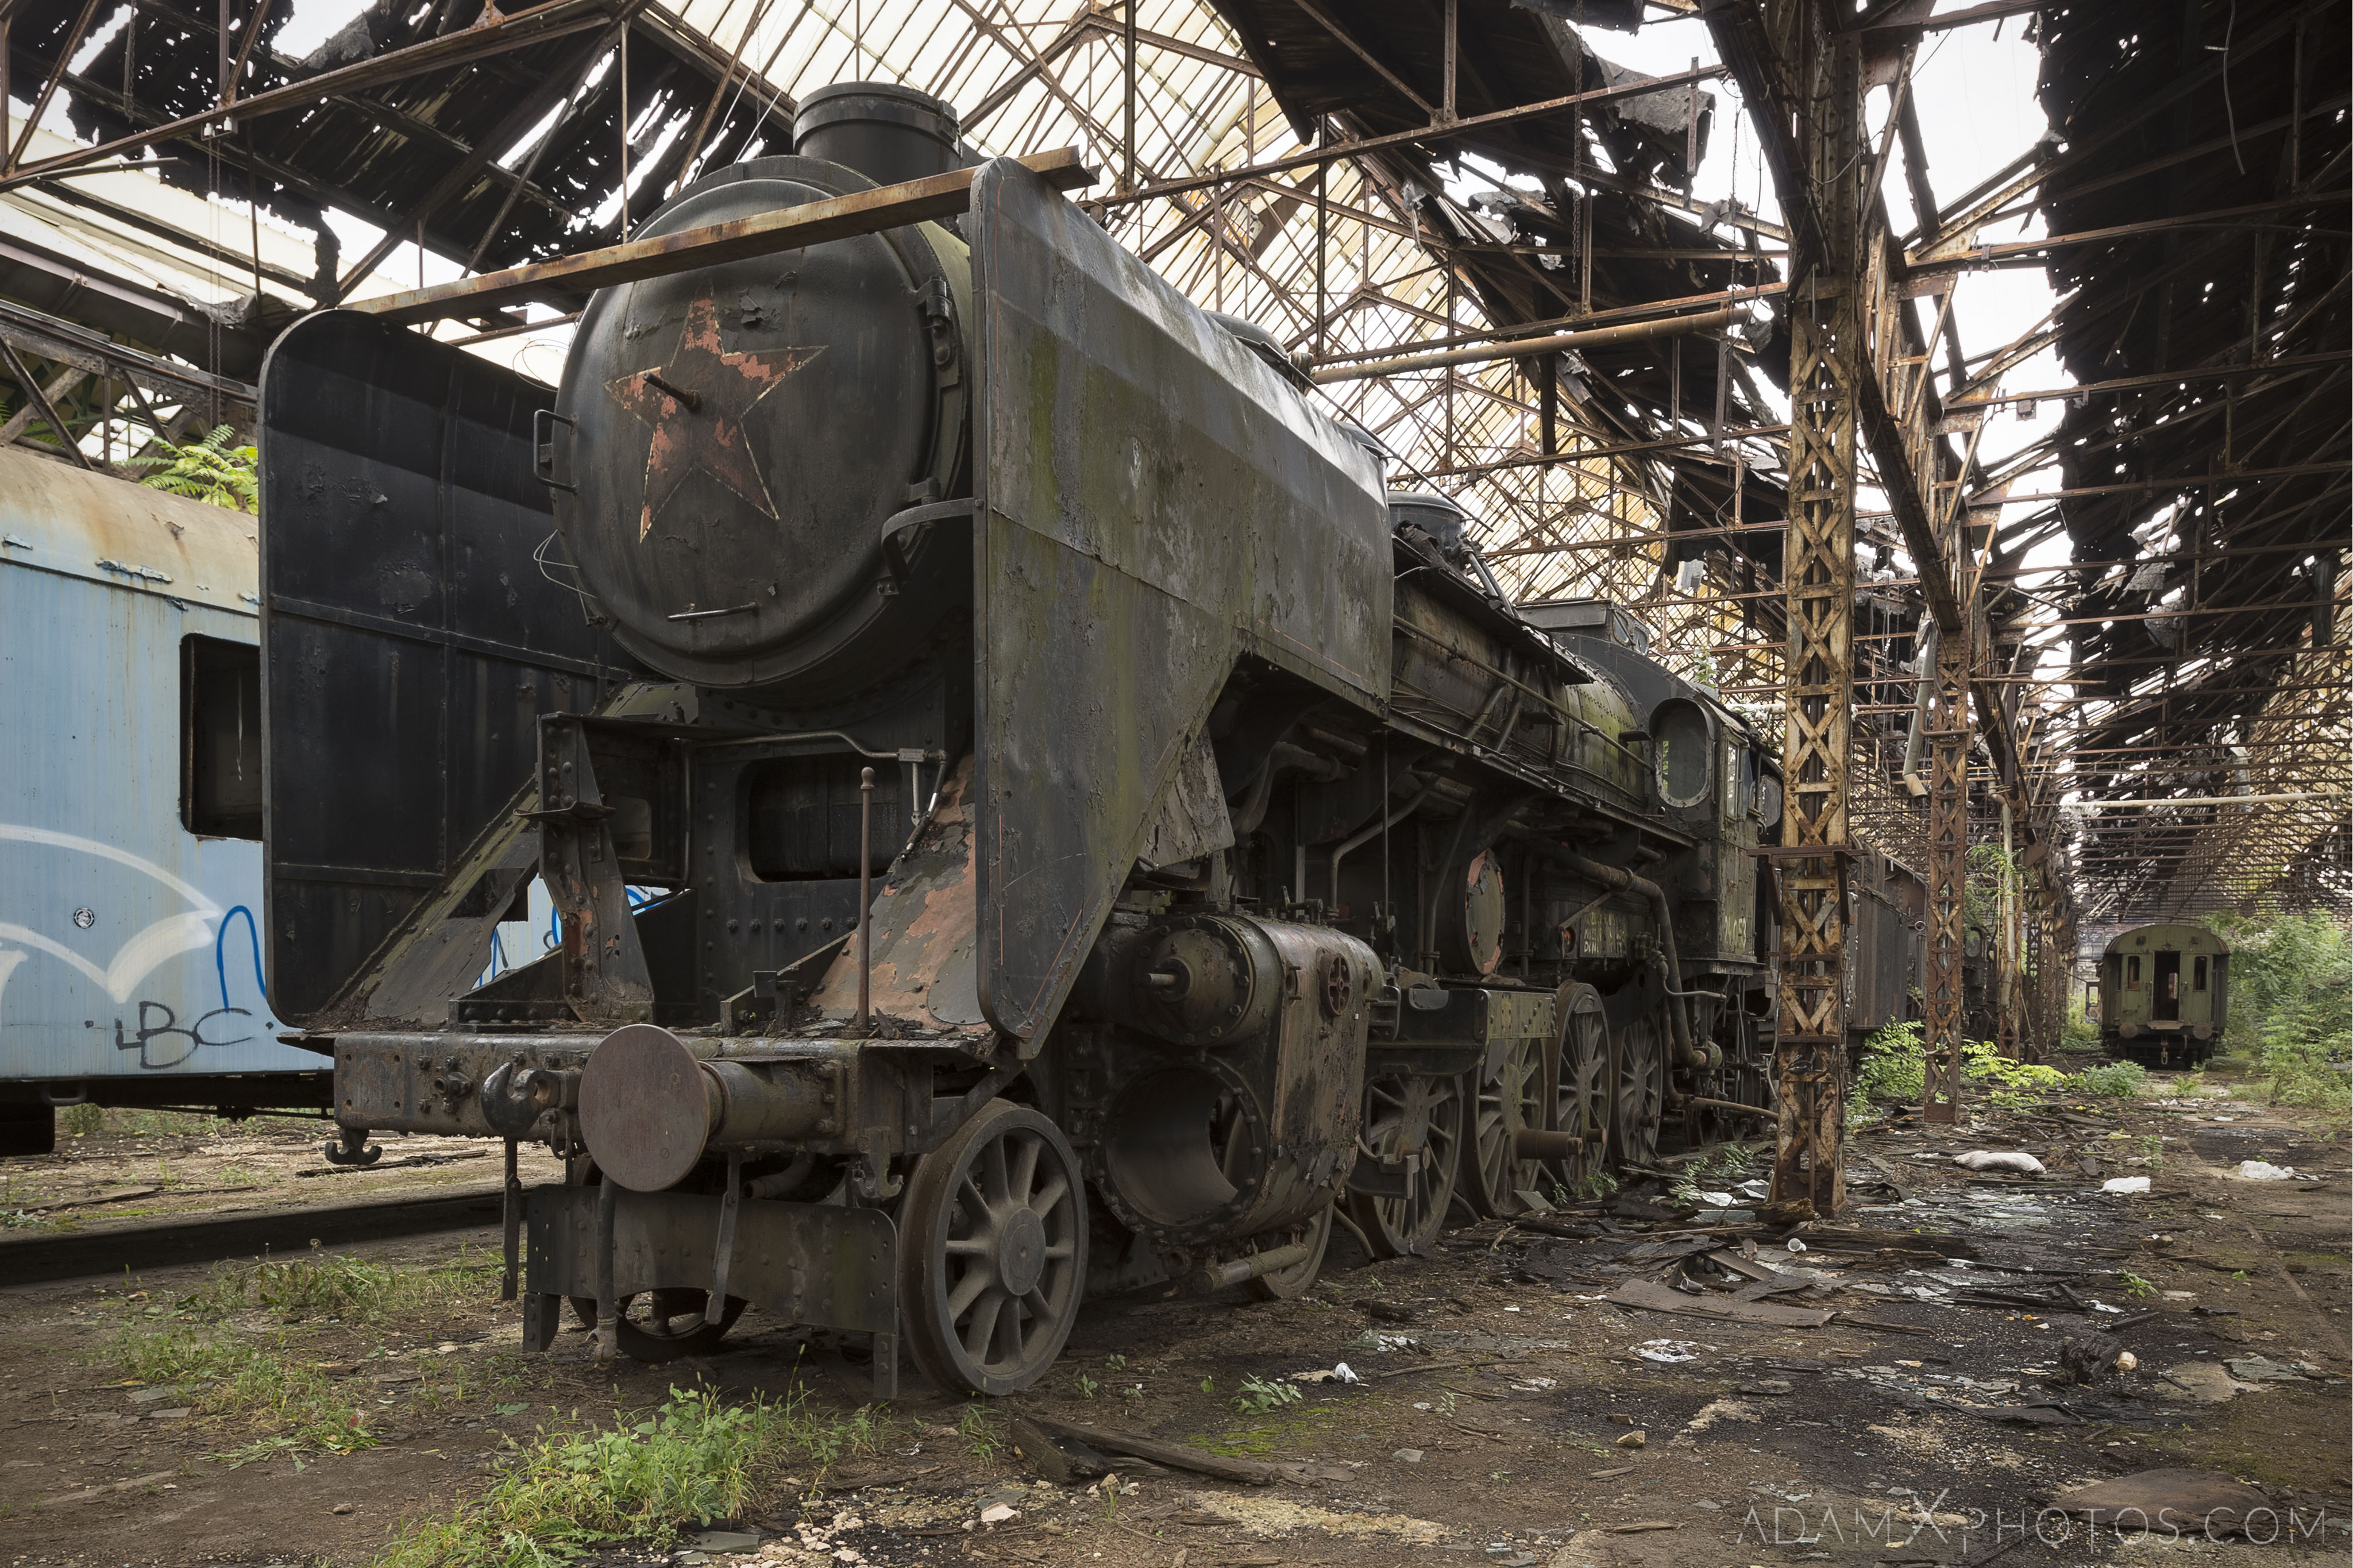 Red Star Locomotive Shed ISTVÁNTELEK TRAIN YARD budapest hungary Adam X Urbex Urban Exploration Access 2018 Abandoned decay ruins lost forgotten derelict location creepy haunting eerie